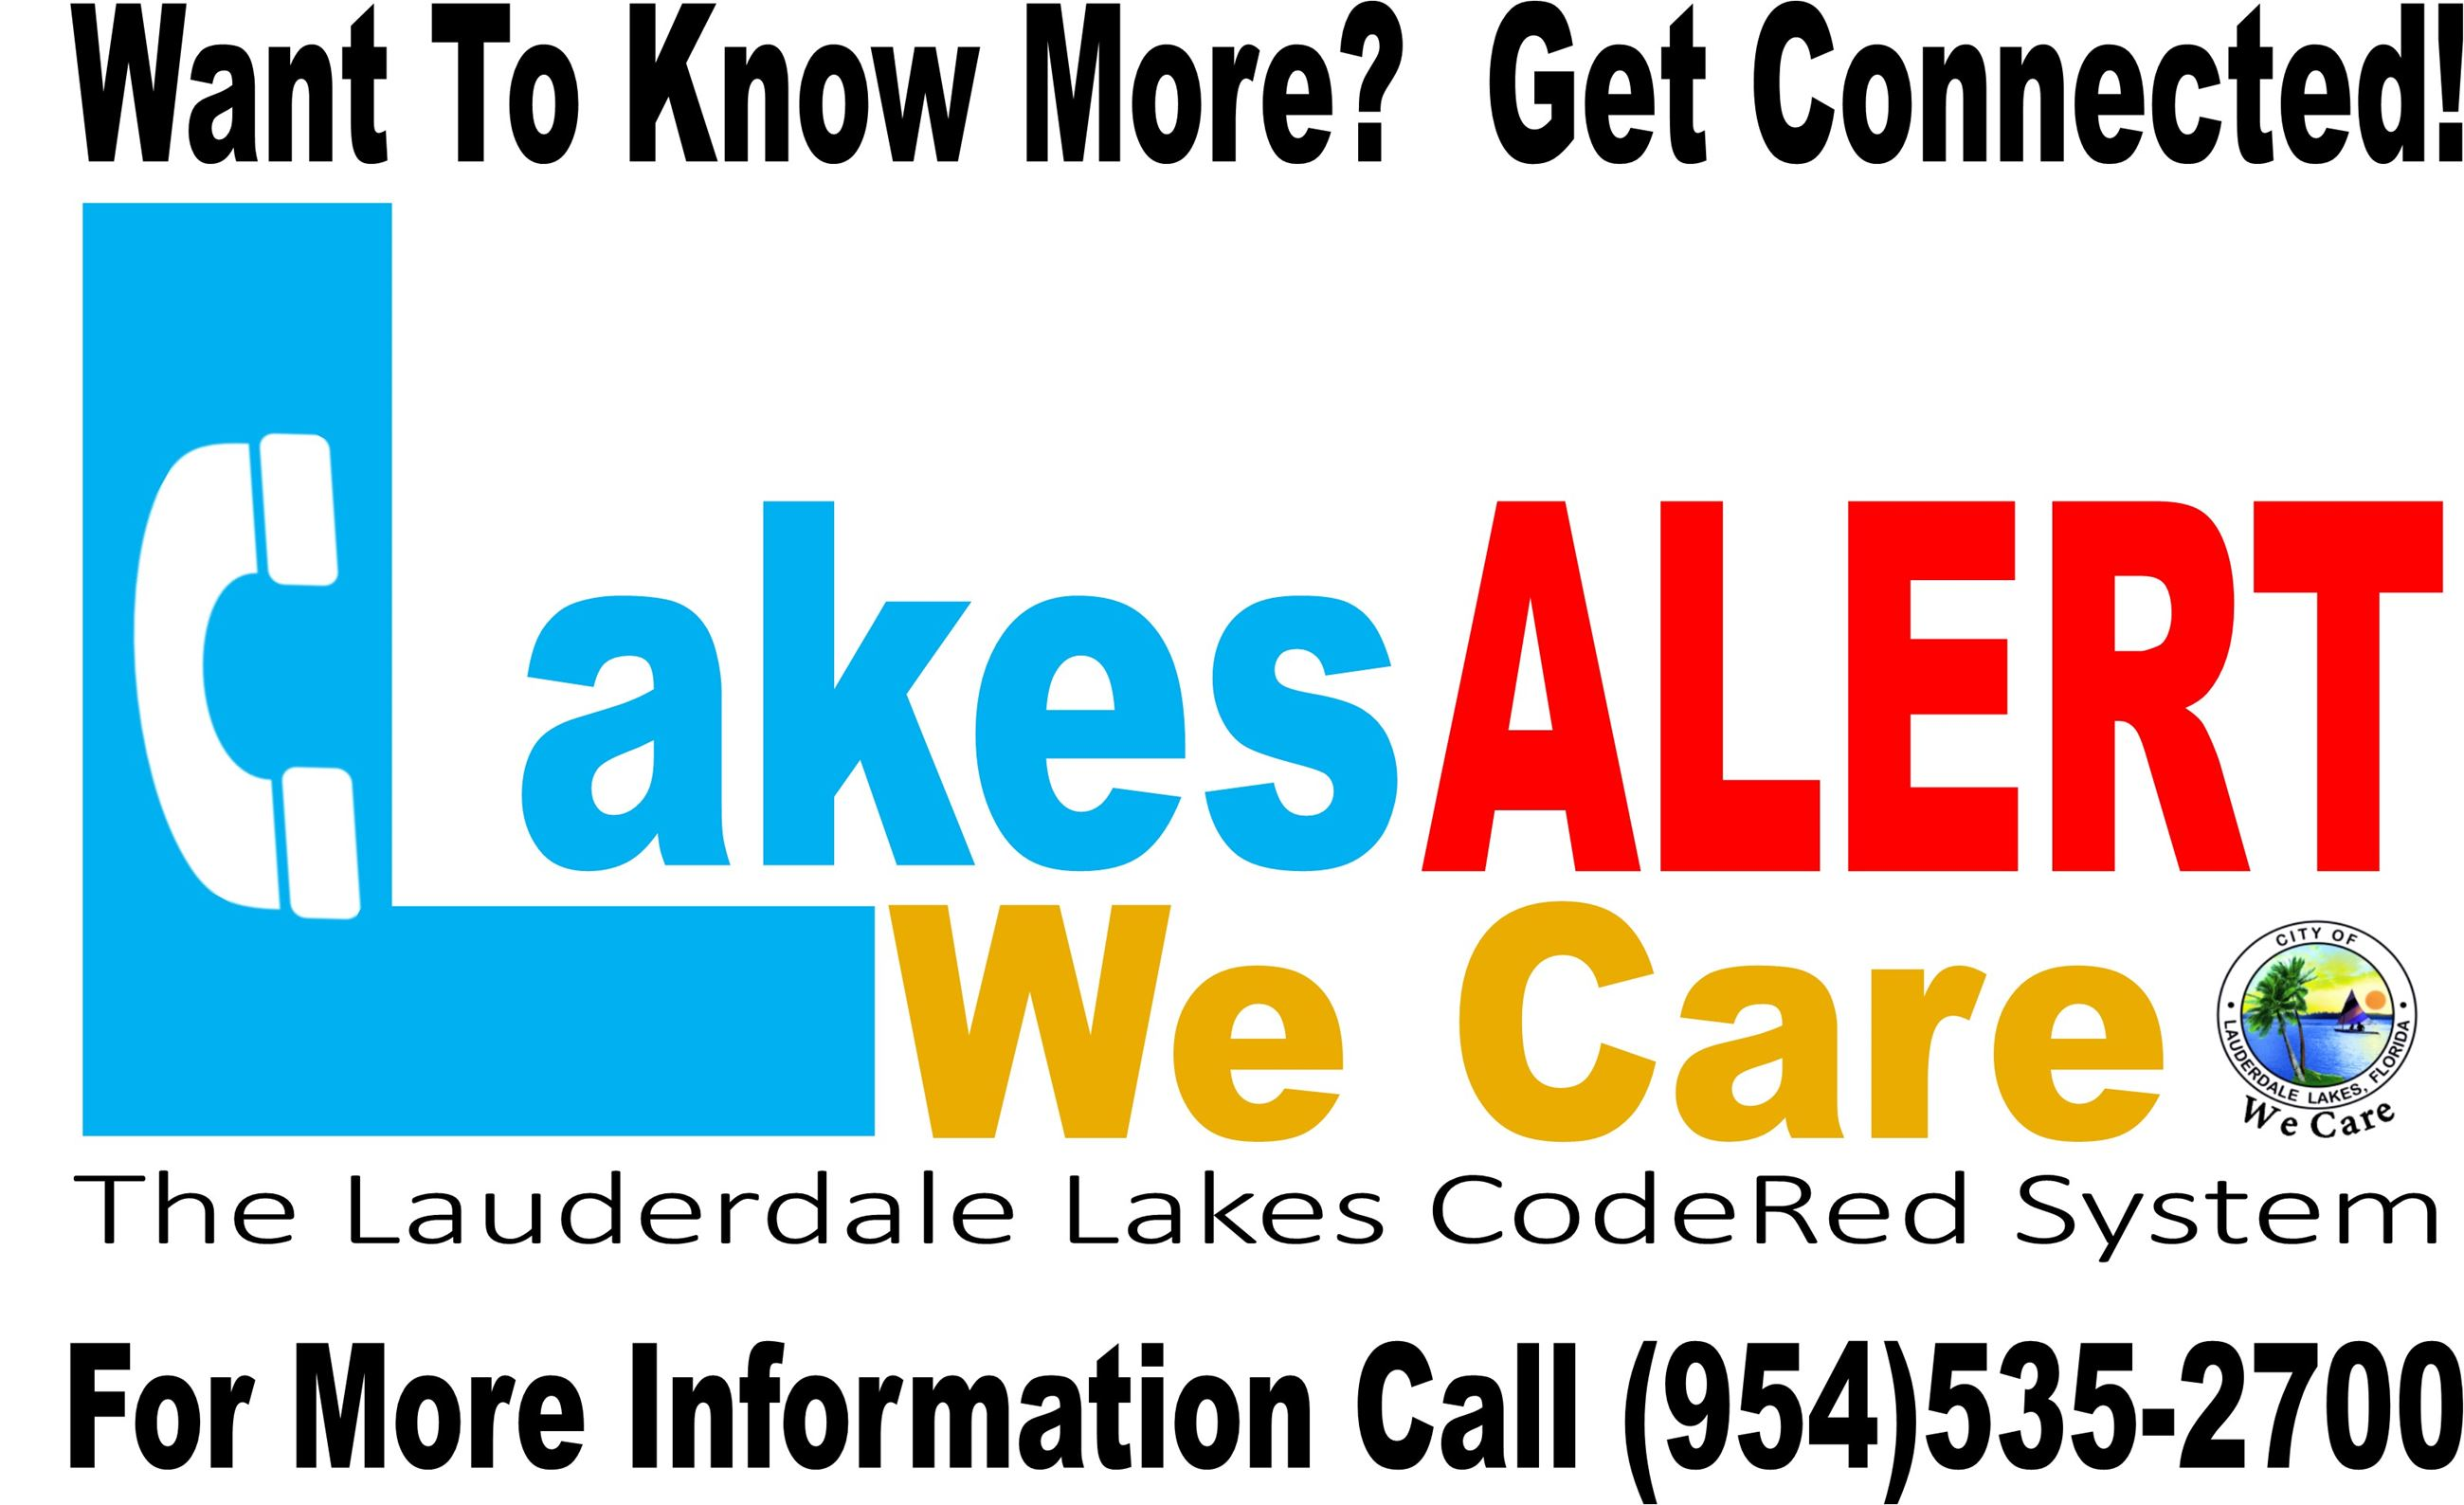 Lauderdale Lakes, FL - Official Website | Official Website